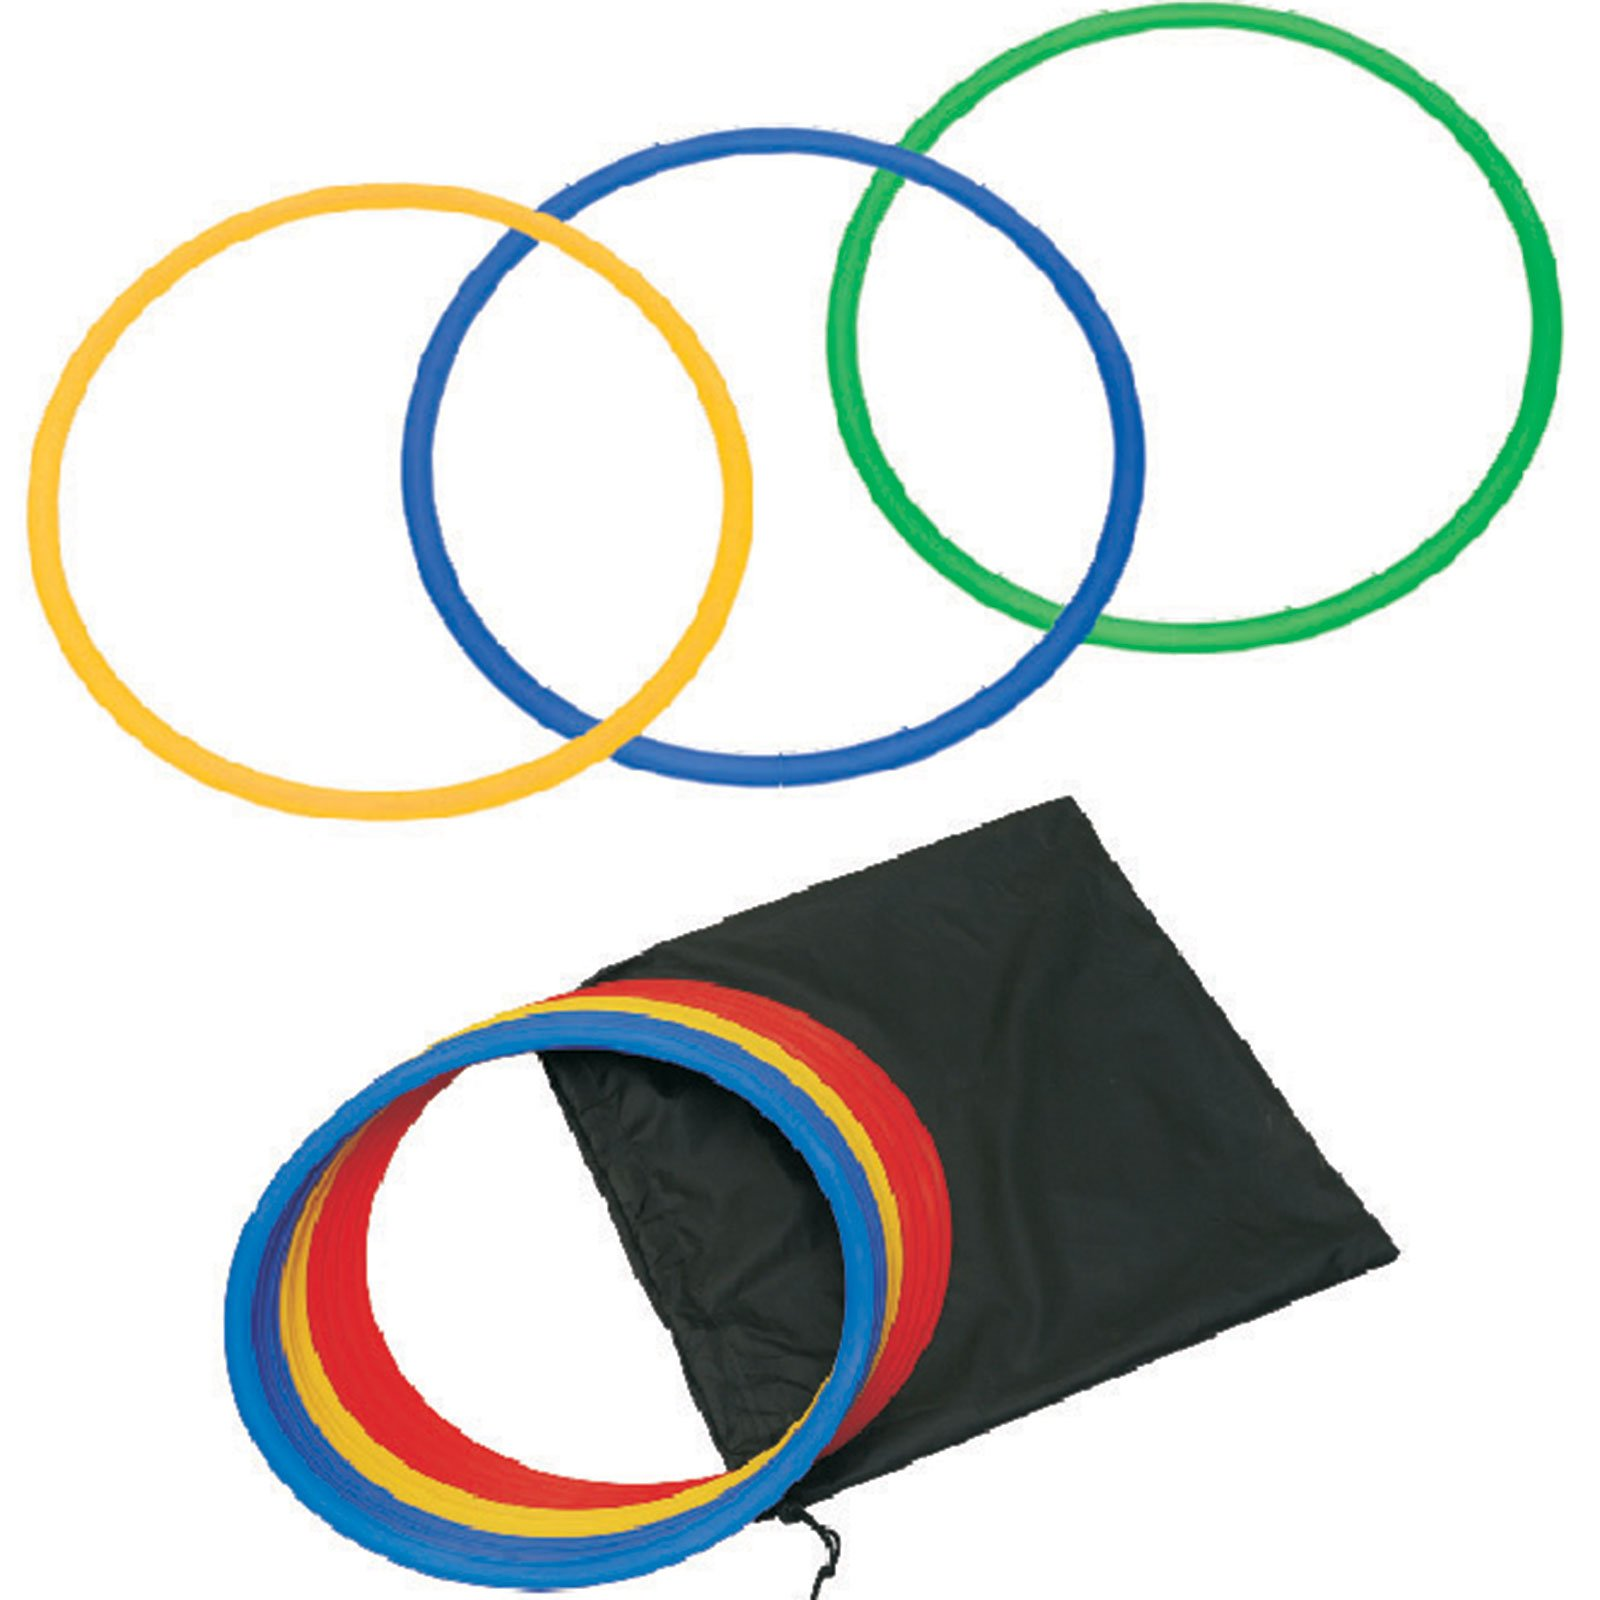 Cougar Speed & Agility Soccer Training Rings with FREE Bag - Set of 12 (18 inches) by CougarFit (Image #1)